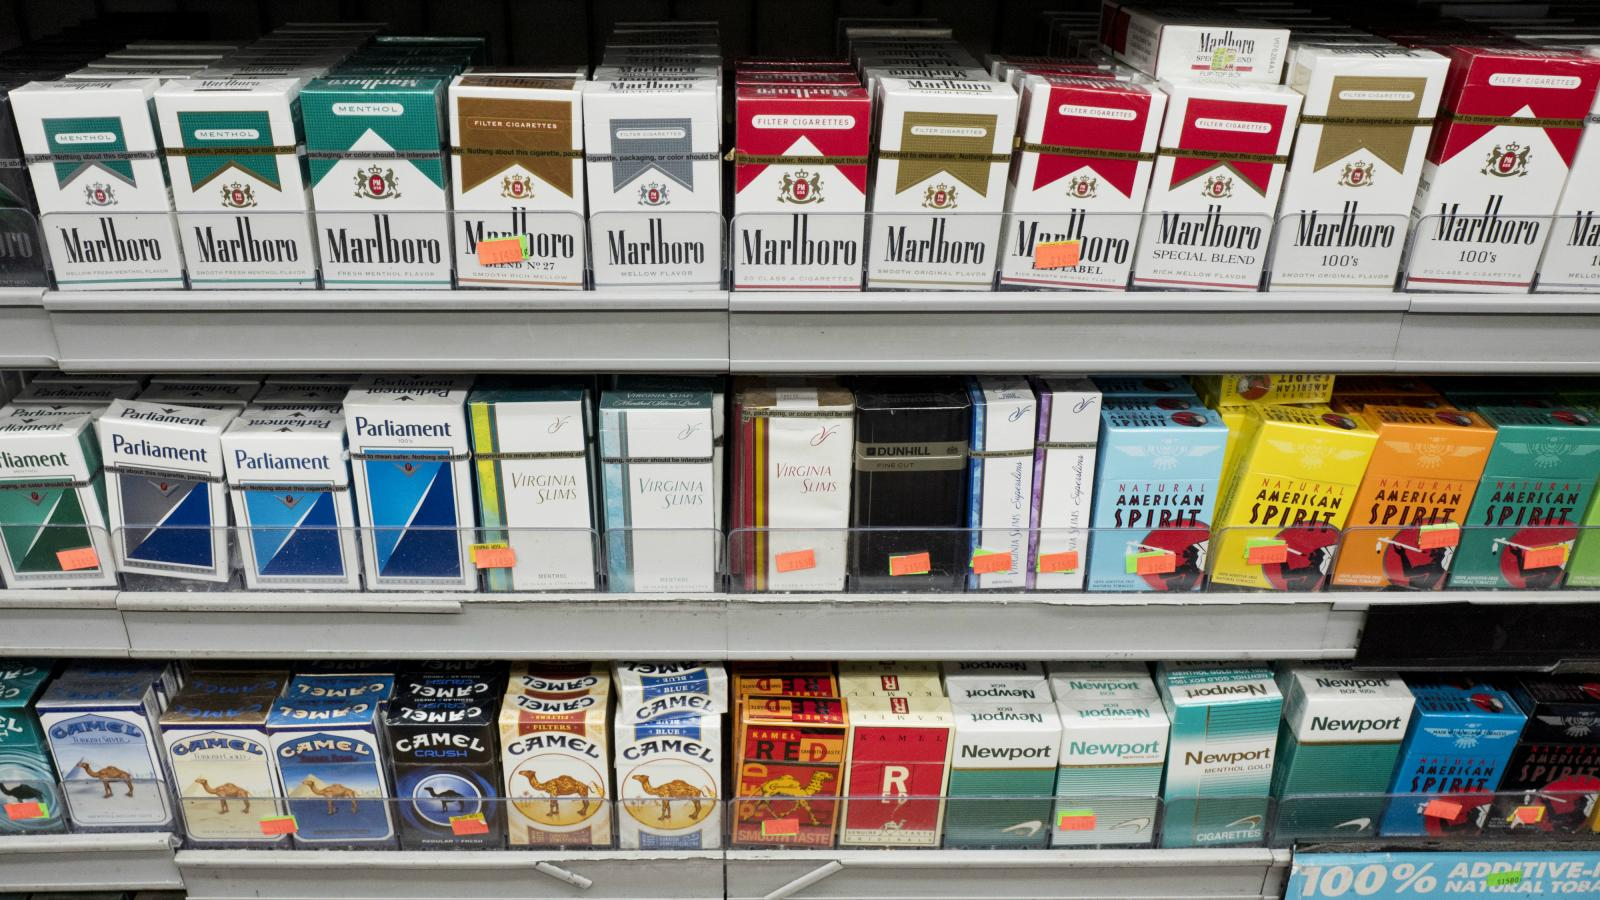 Cigarette companies taking strain